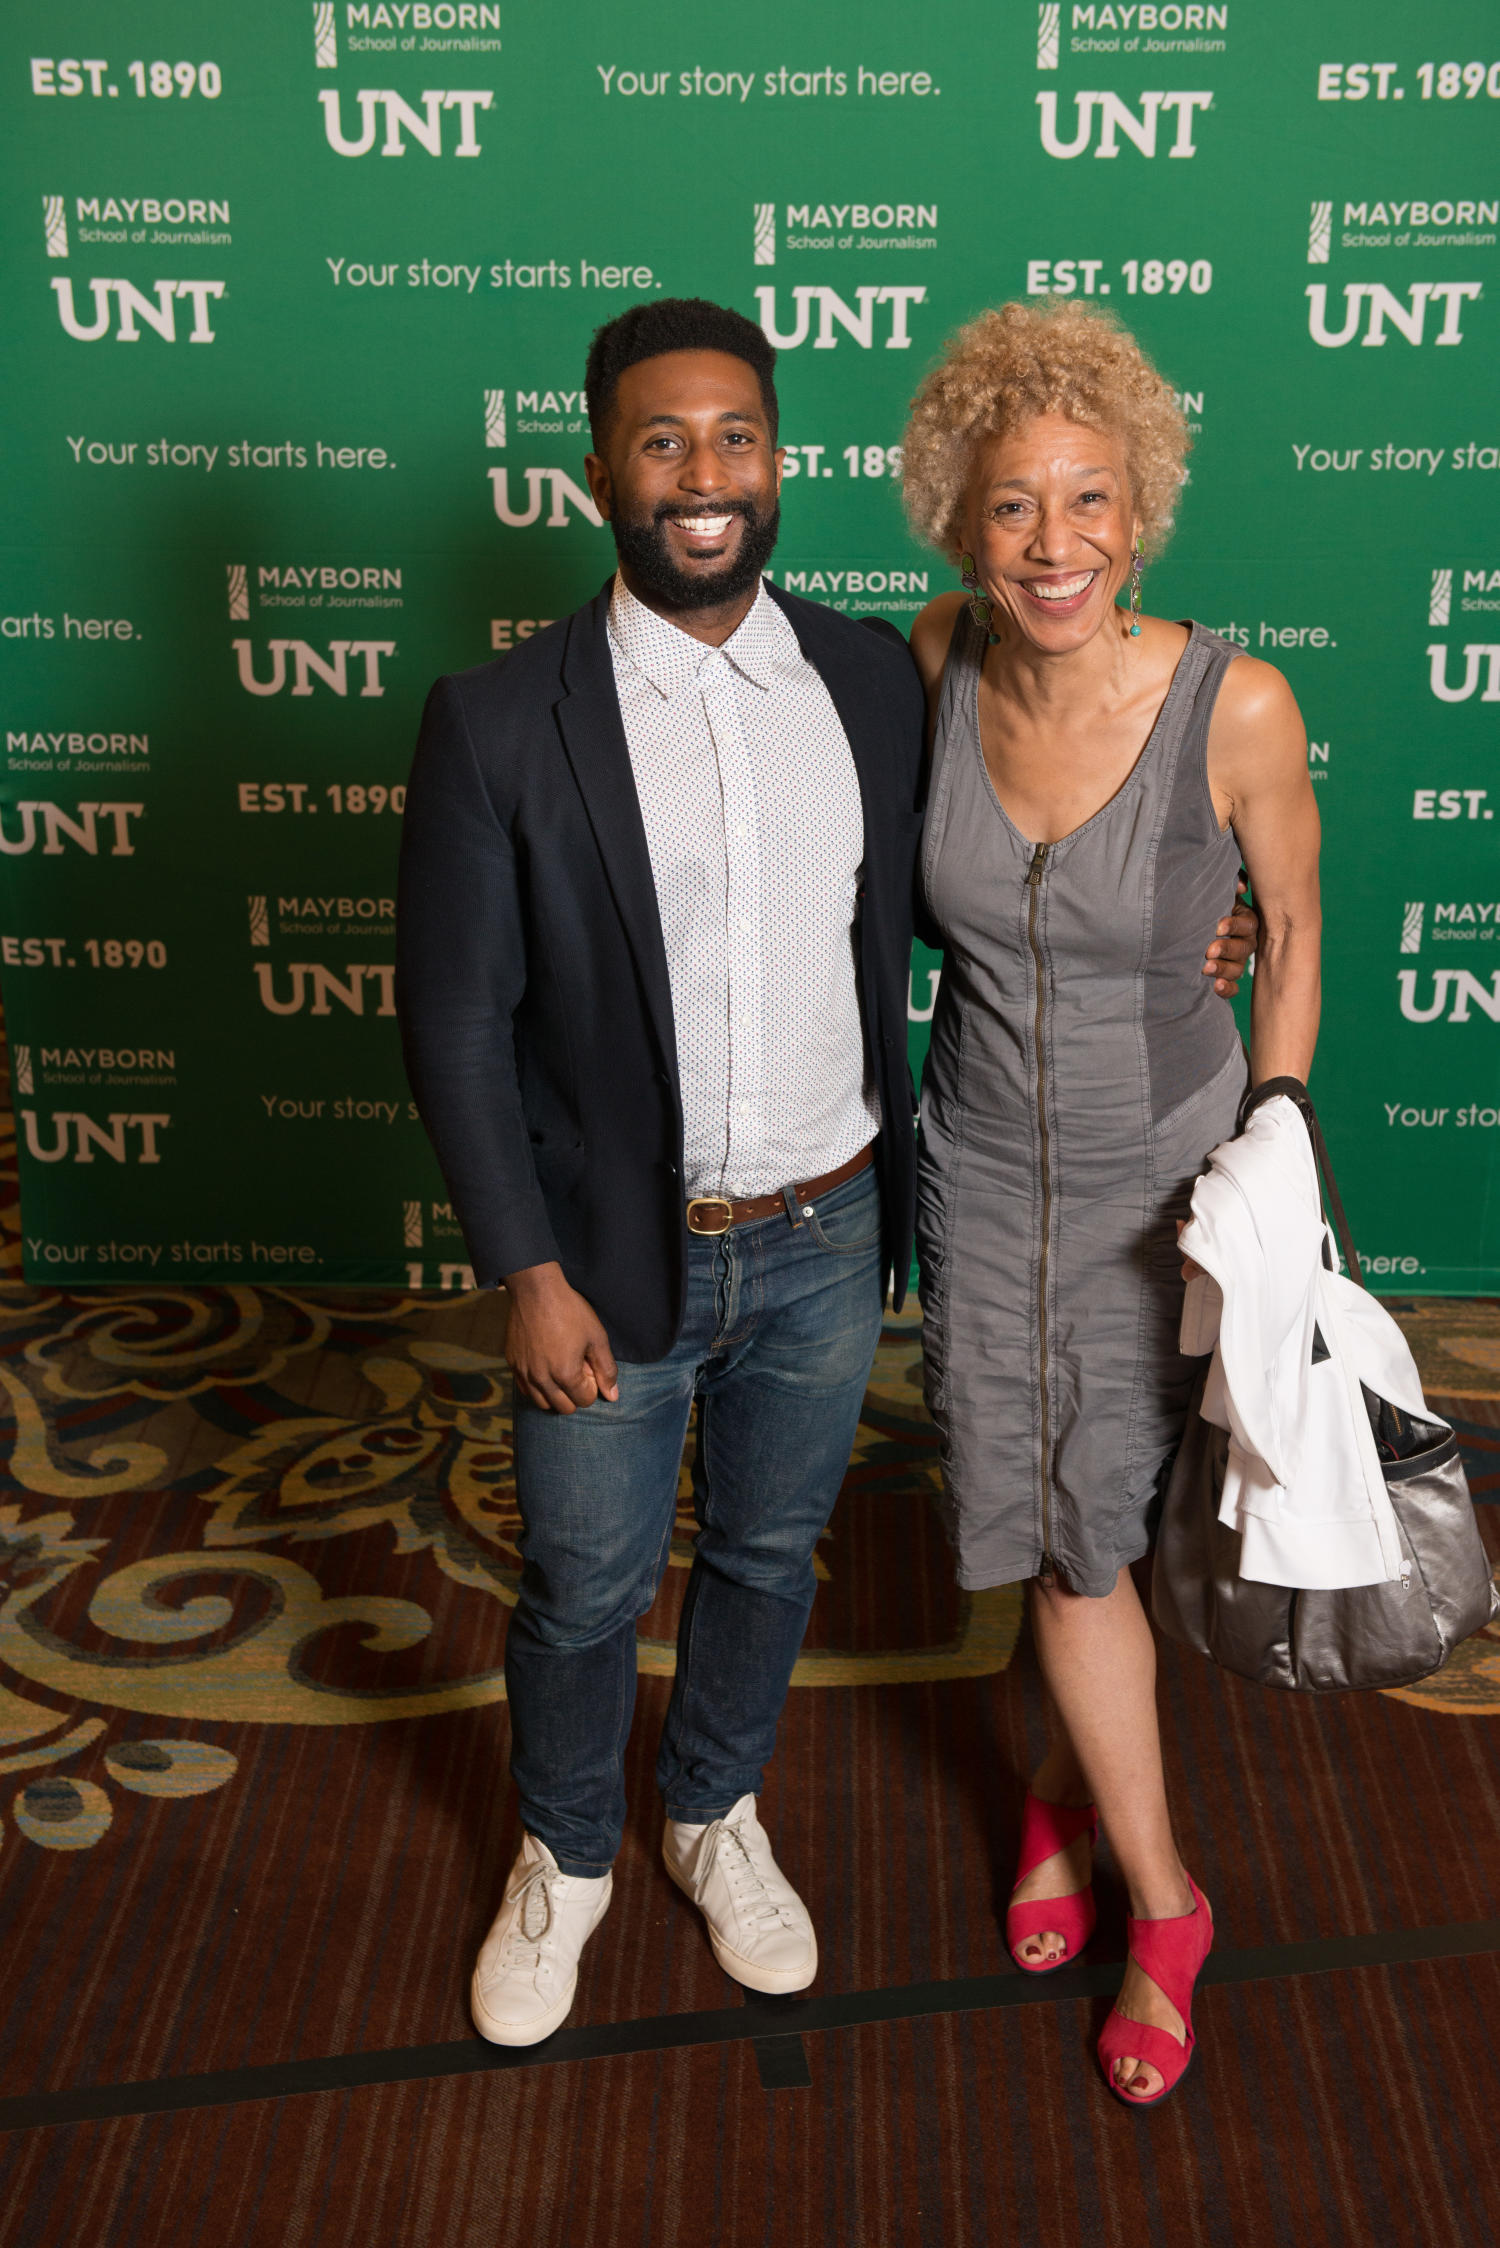 [Wesley Morris and Margo Jefferson standing together], Photograph of Wesley Morris and Margo Jefferson standing together in front of a Mayborn and UNT backdrop during the Literary Lights Dinner. The event was held as a part of the Mayborn Literary Nonfiction Conference in the International Ballroom at the Hilton DFW Lakes Executive Conference Center, Grapevine, TX.,